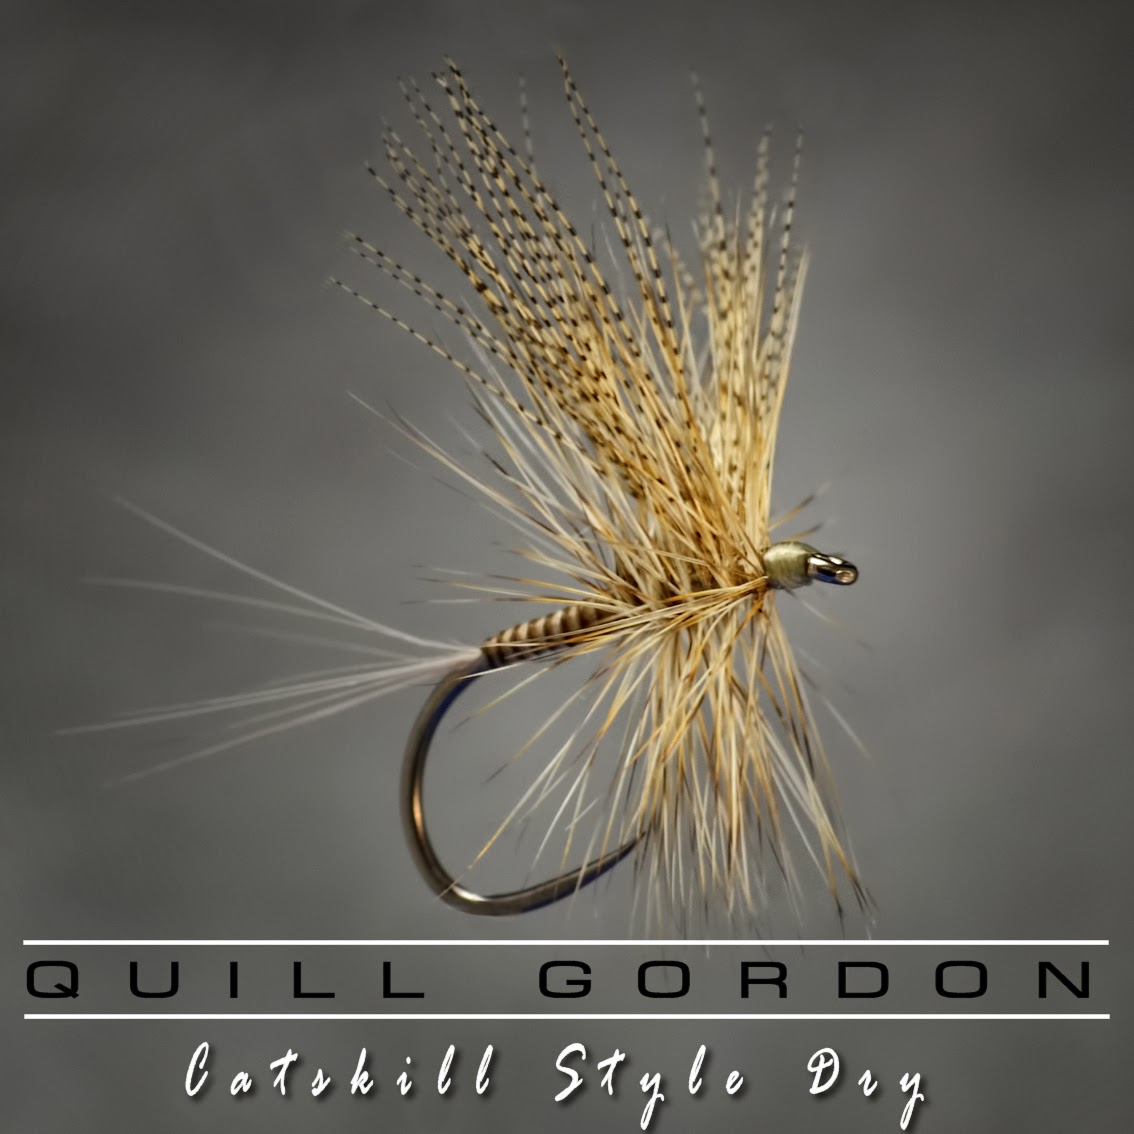 The Quill Gordon Fly Fish Food Fly Tying And Fly Fishing